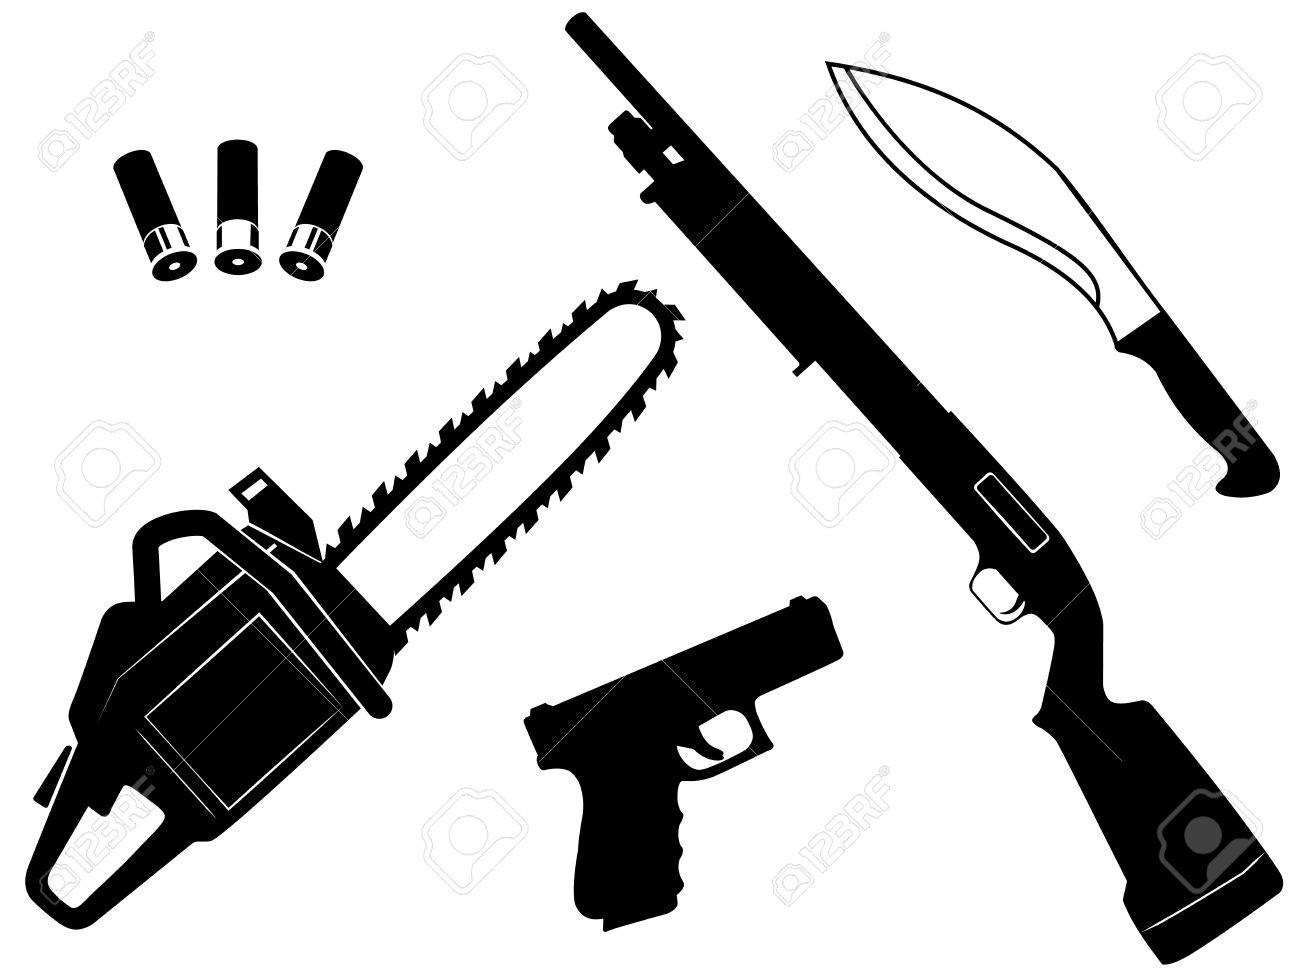 Vector Et Of Gangster Criminal Weapons And Anti Zombie Apocalypse 1300x977